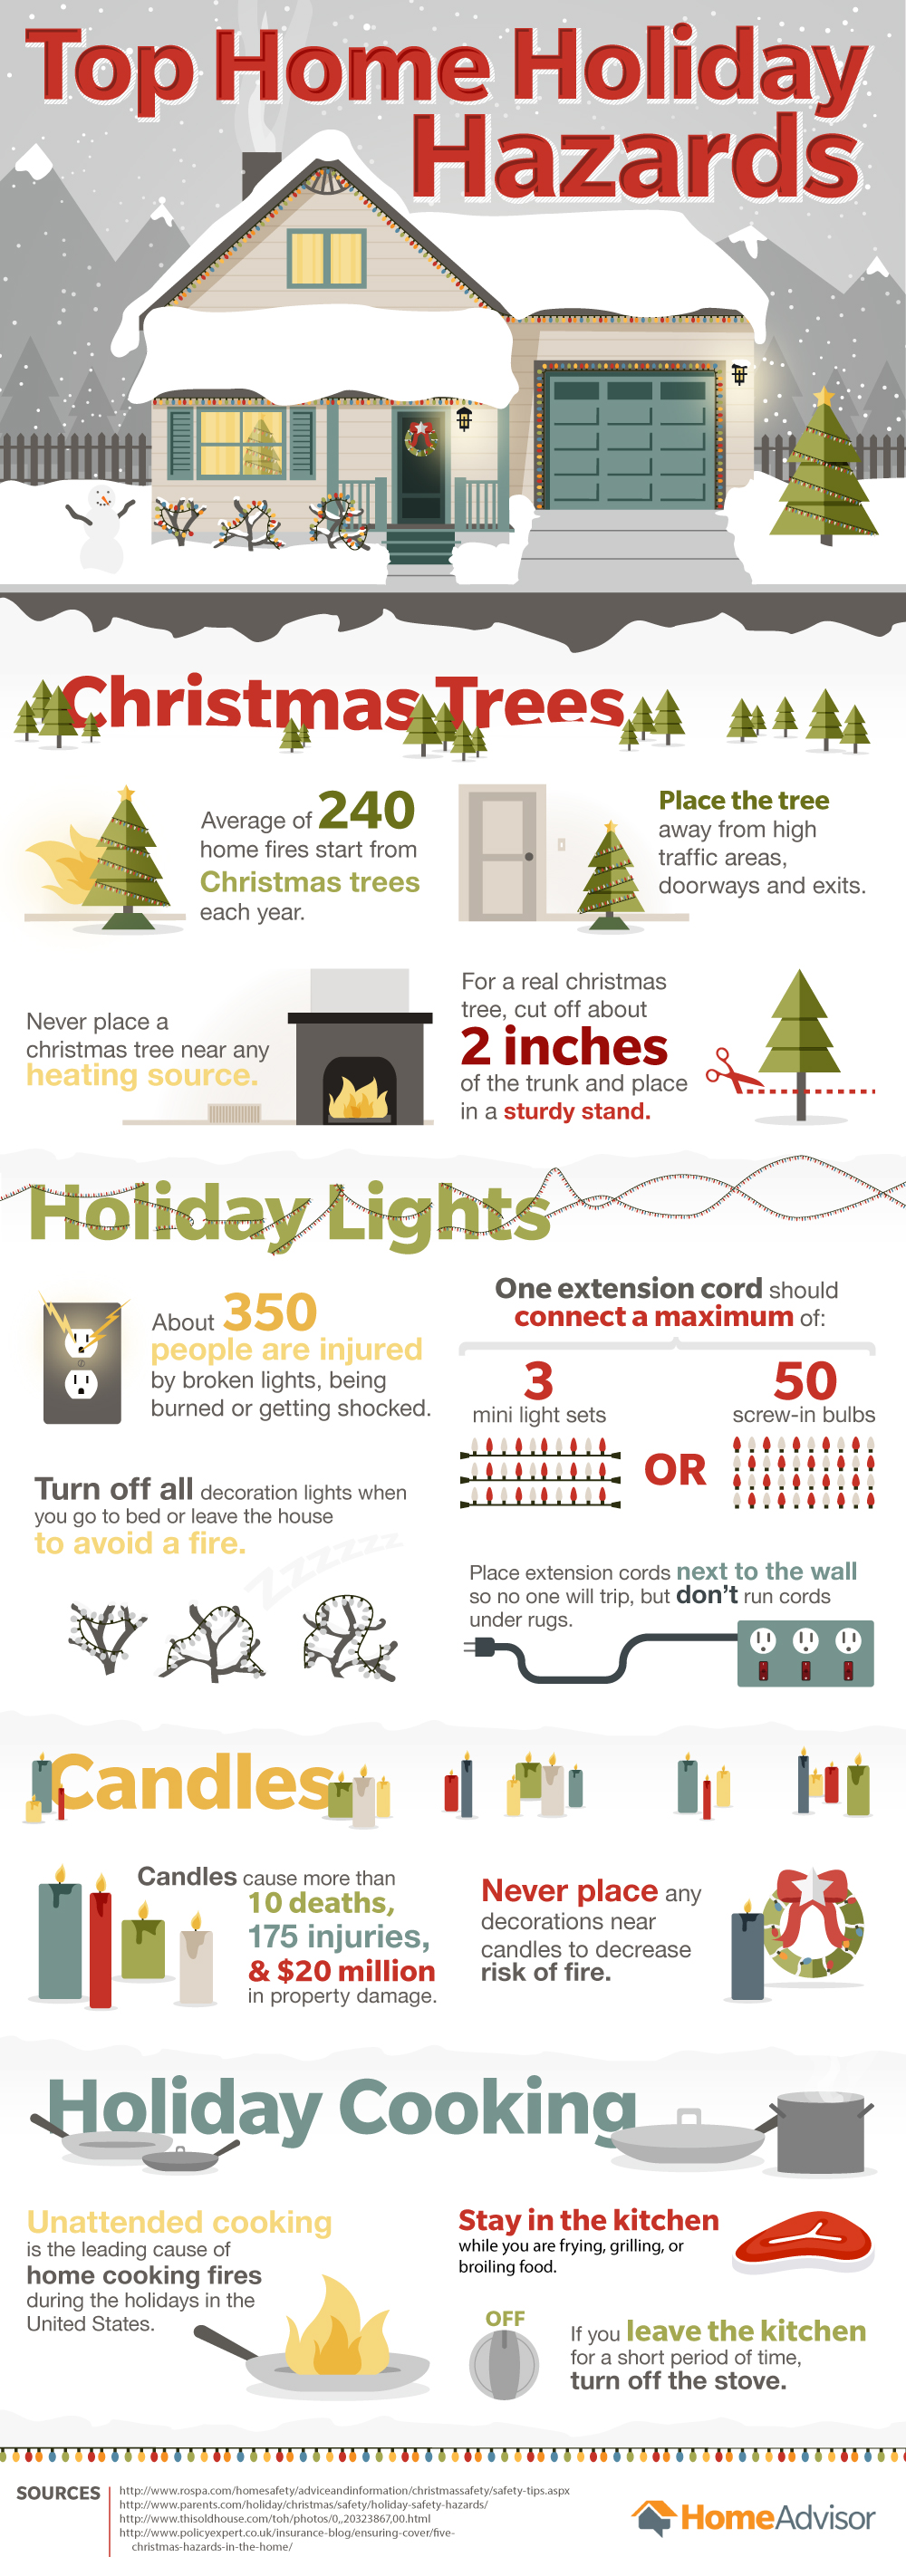 Top Holiday Home Hazards